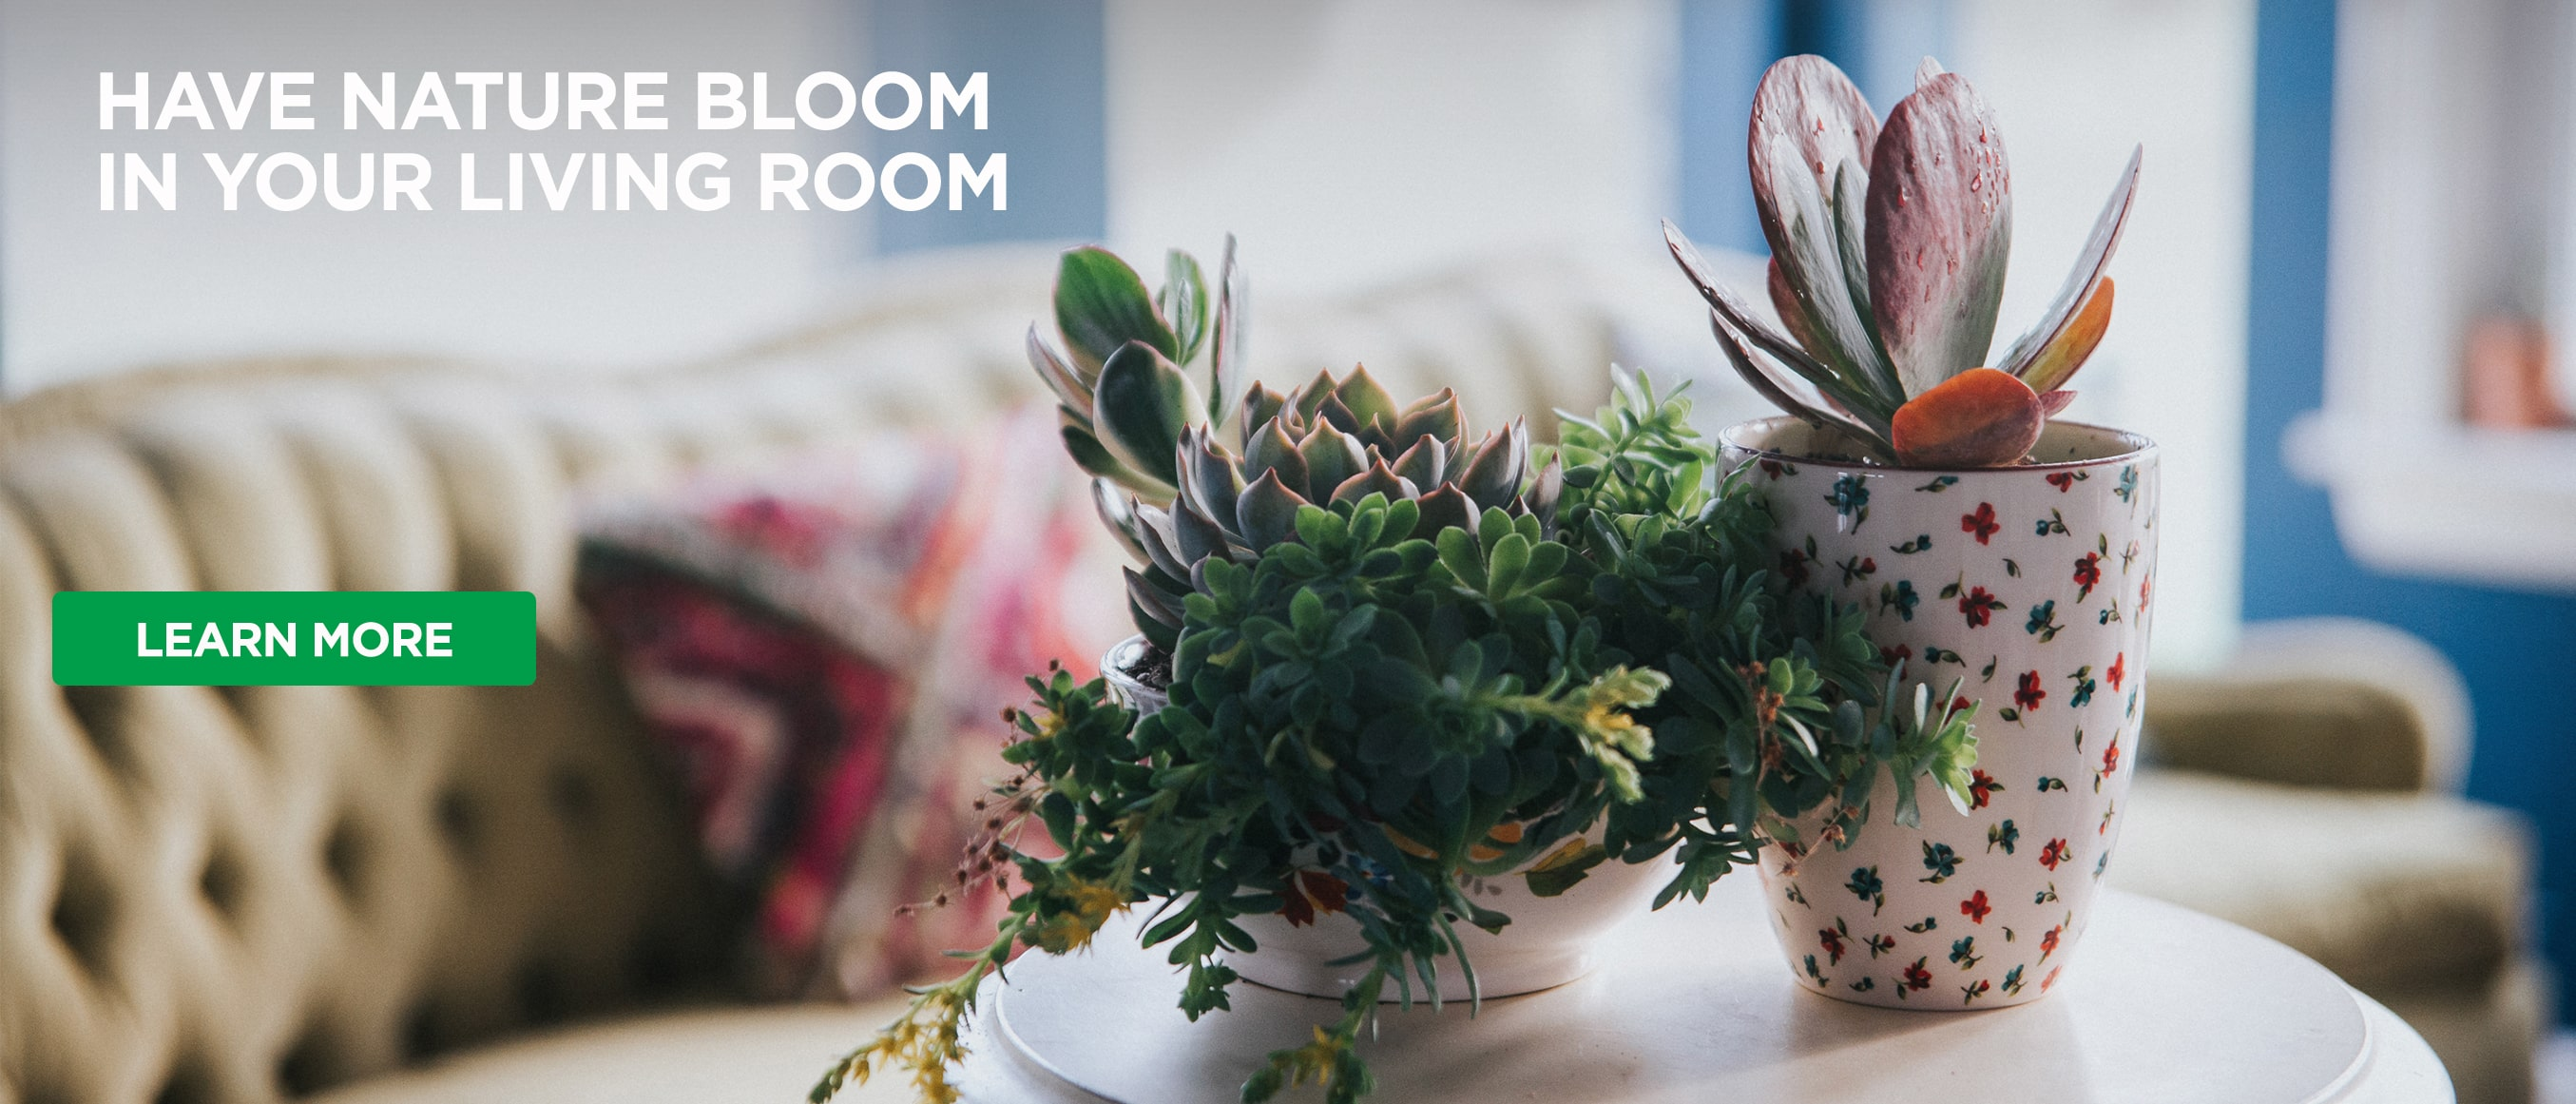 Succulents on table in living room